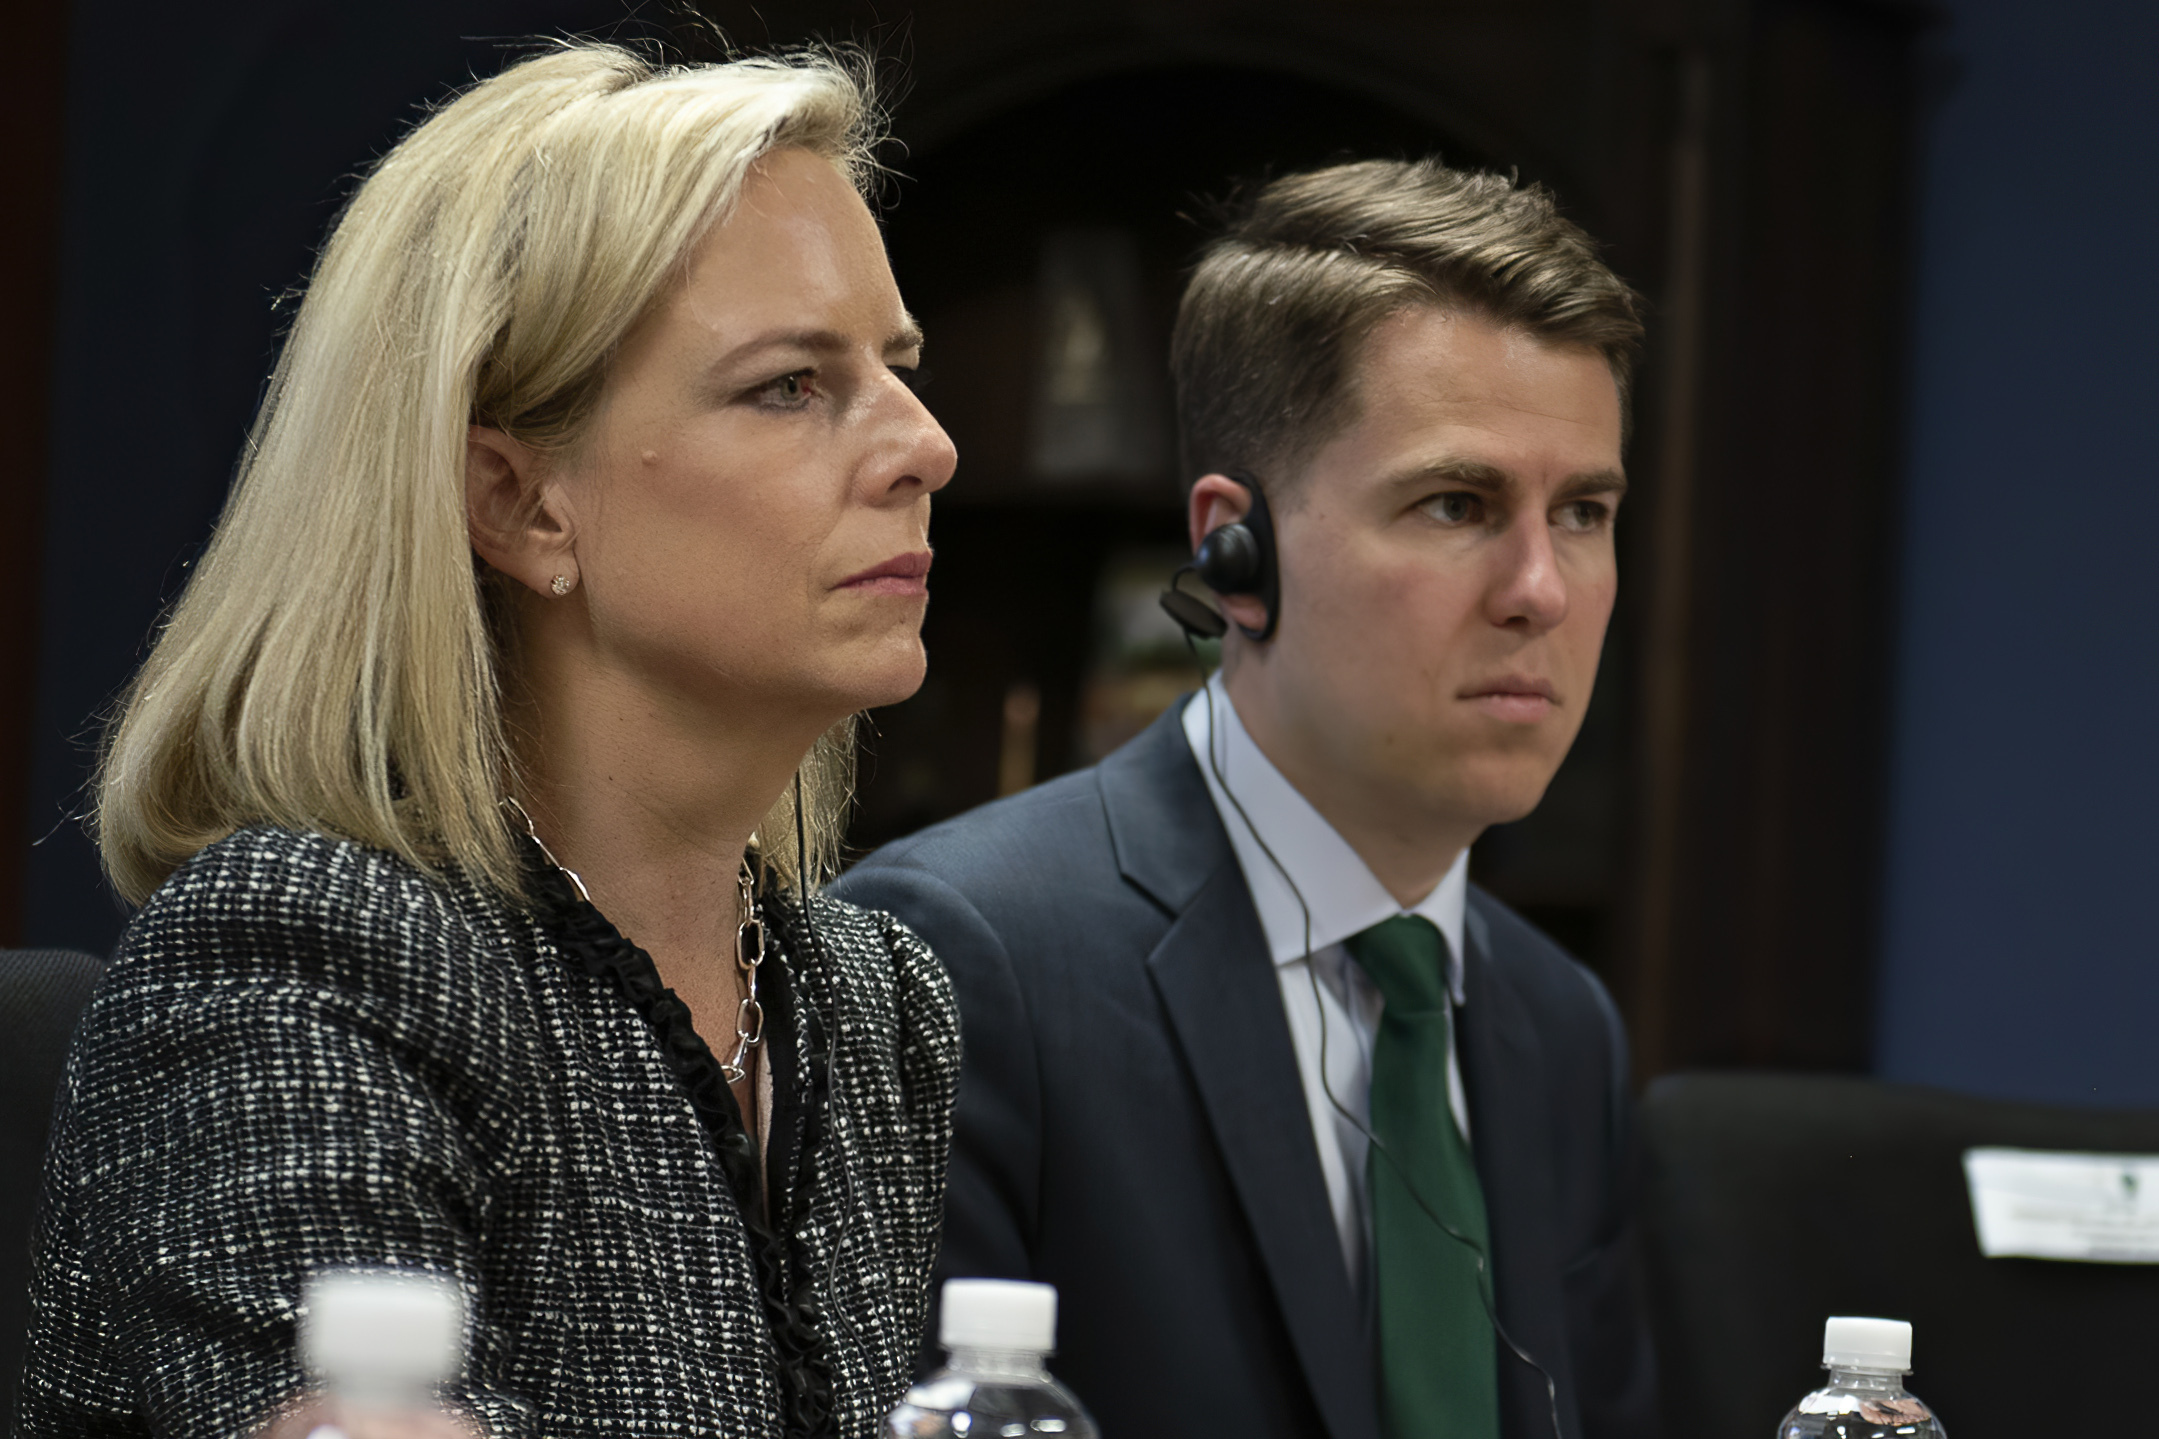 Then-Secretary of Homeland Security Kirstjen Nielsen and then-Department of Homeland Security chief of staff Miles Taylor, right, meet with Honduran President Juan Hernandez on March 27, 2018.